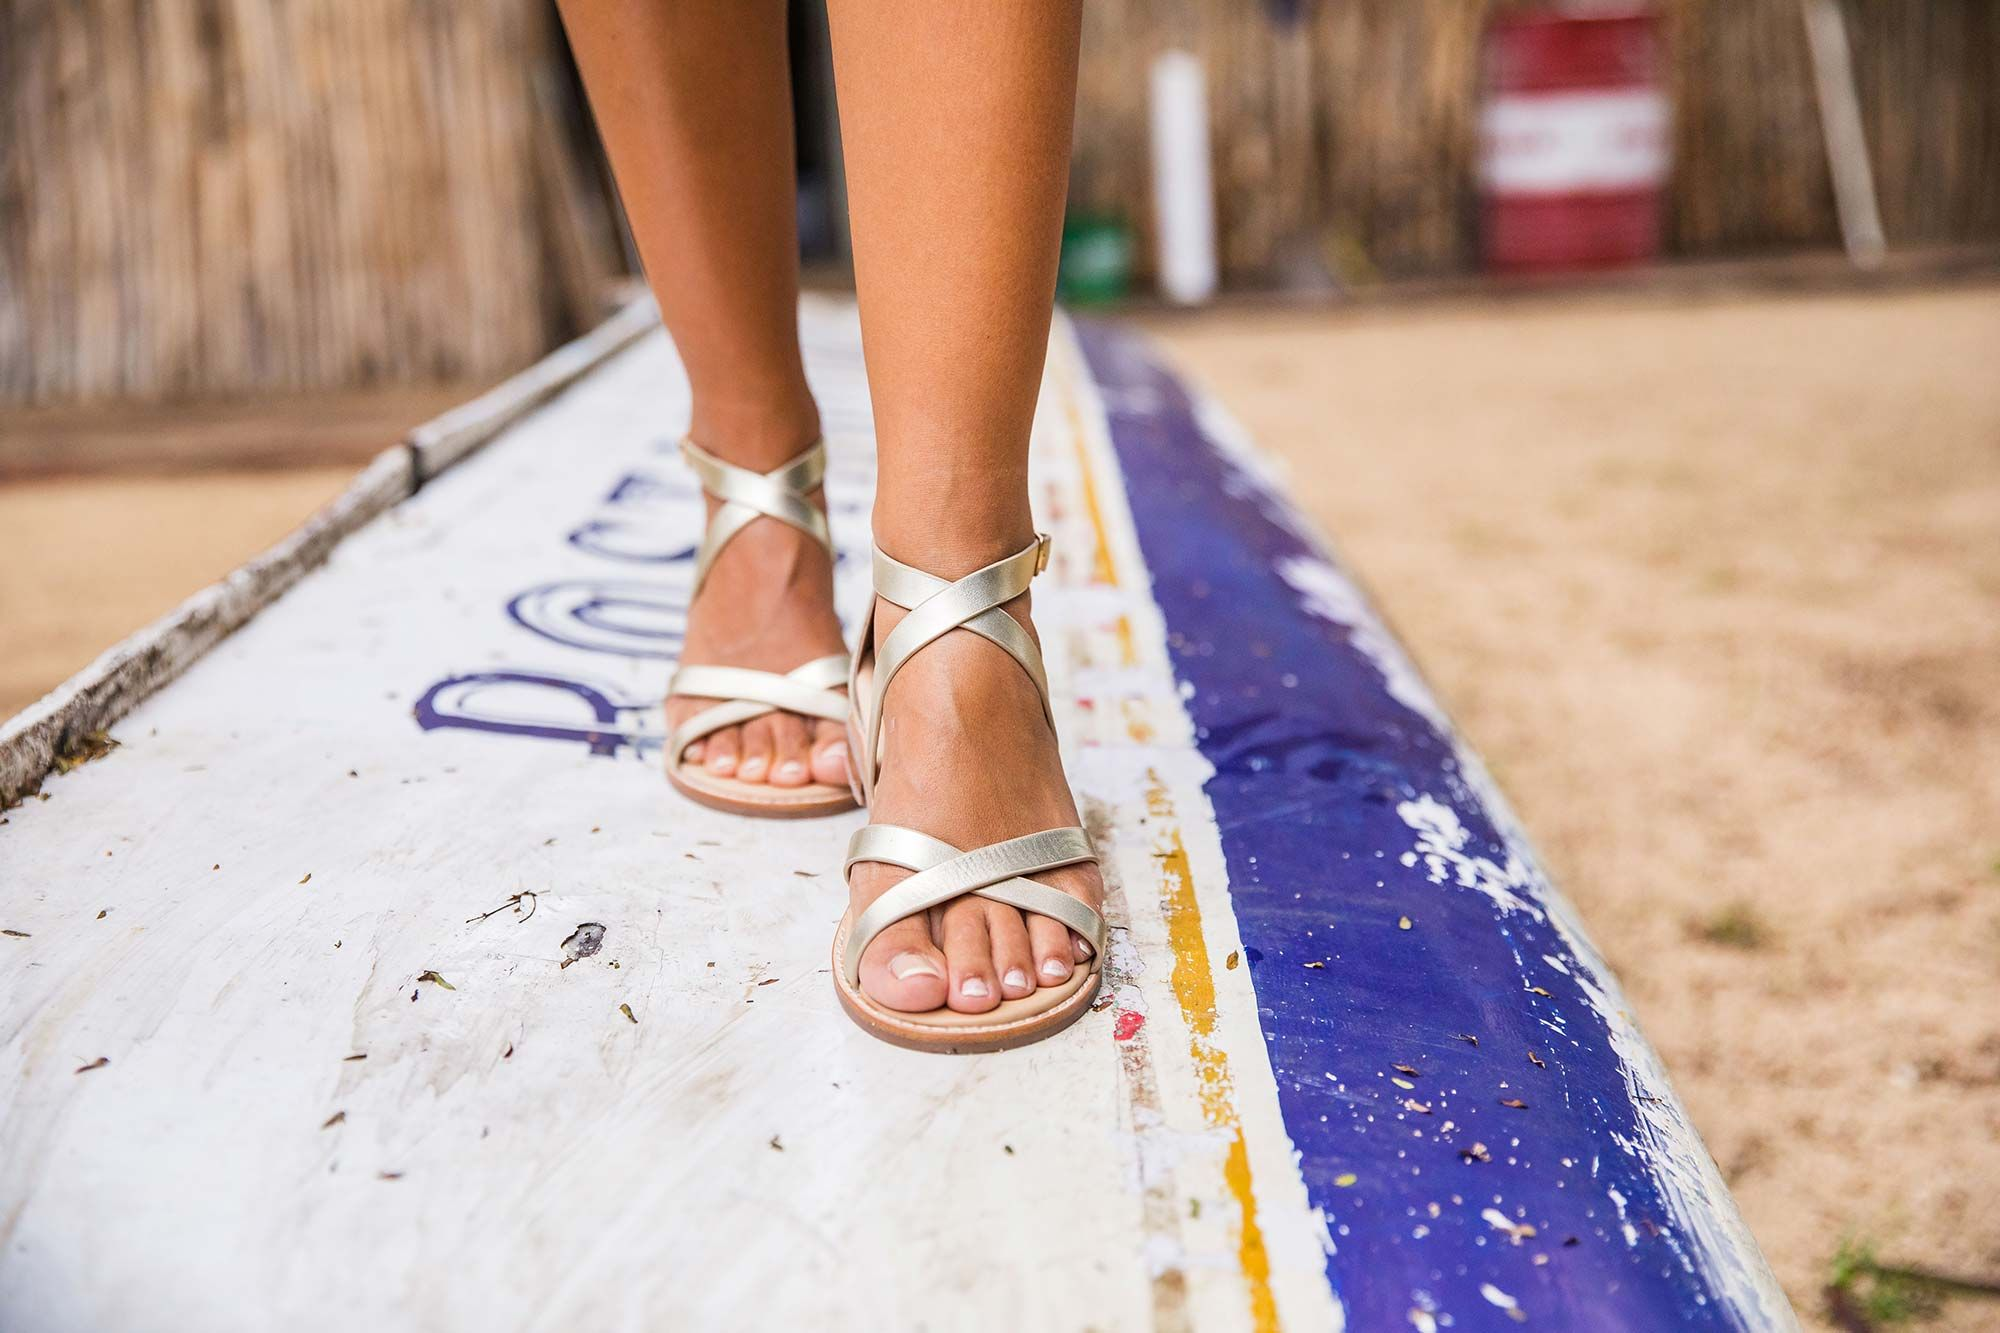 Bared_Footwear_La_Brisa_Bali_Travel_Summer_Womens_Campaign_Loon_Gold_Leather_Sandals_Up_Close